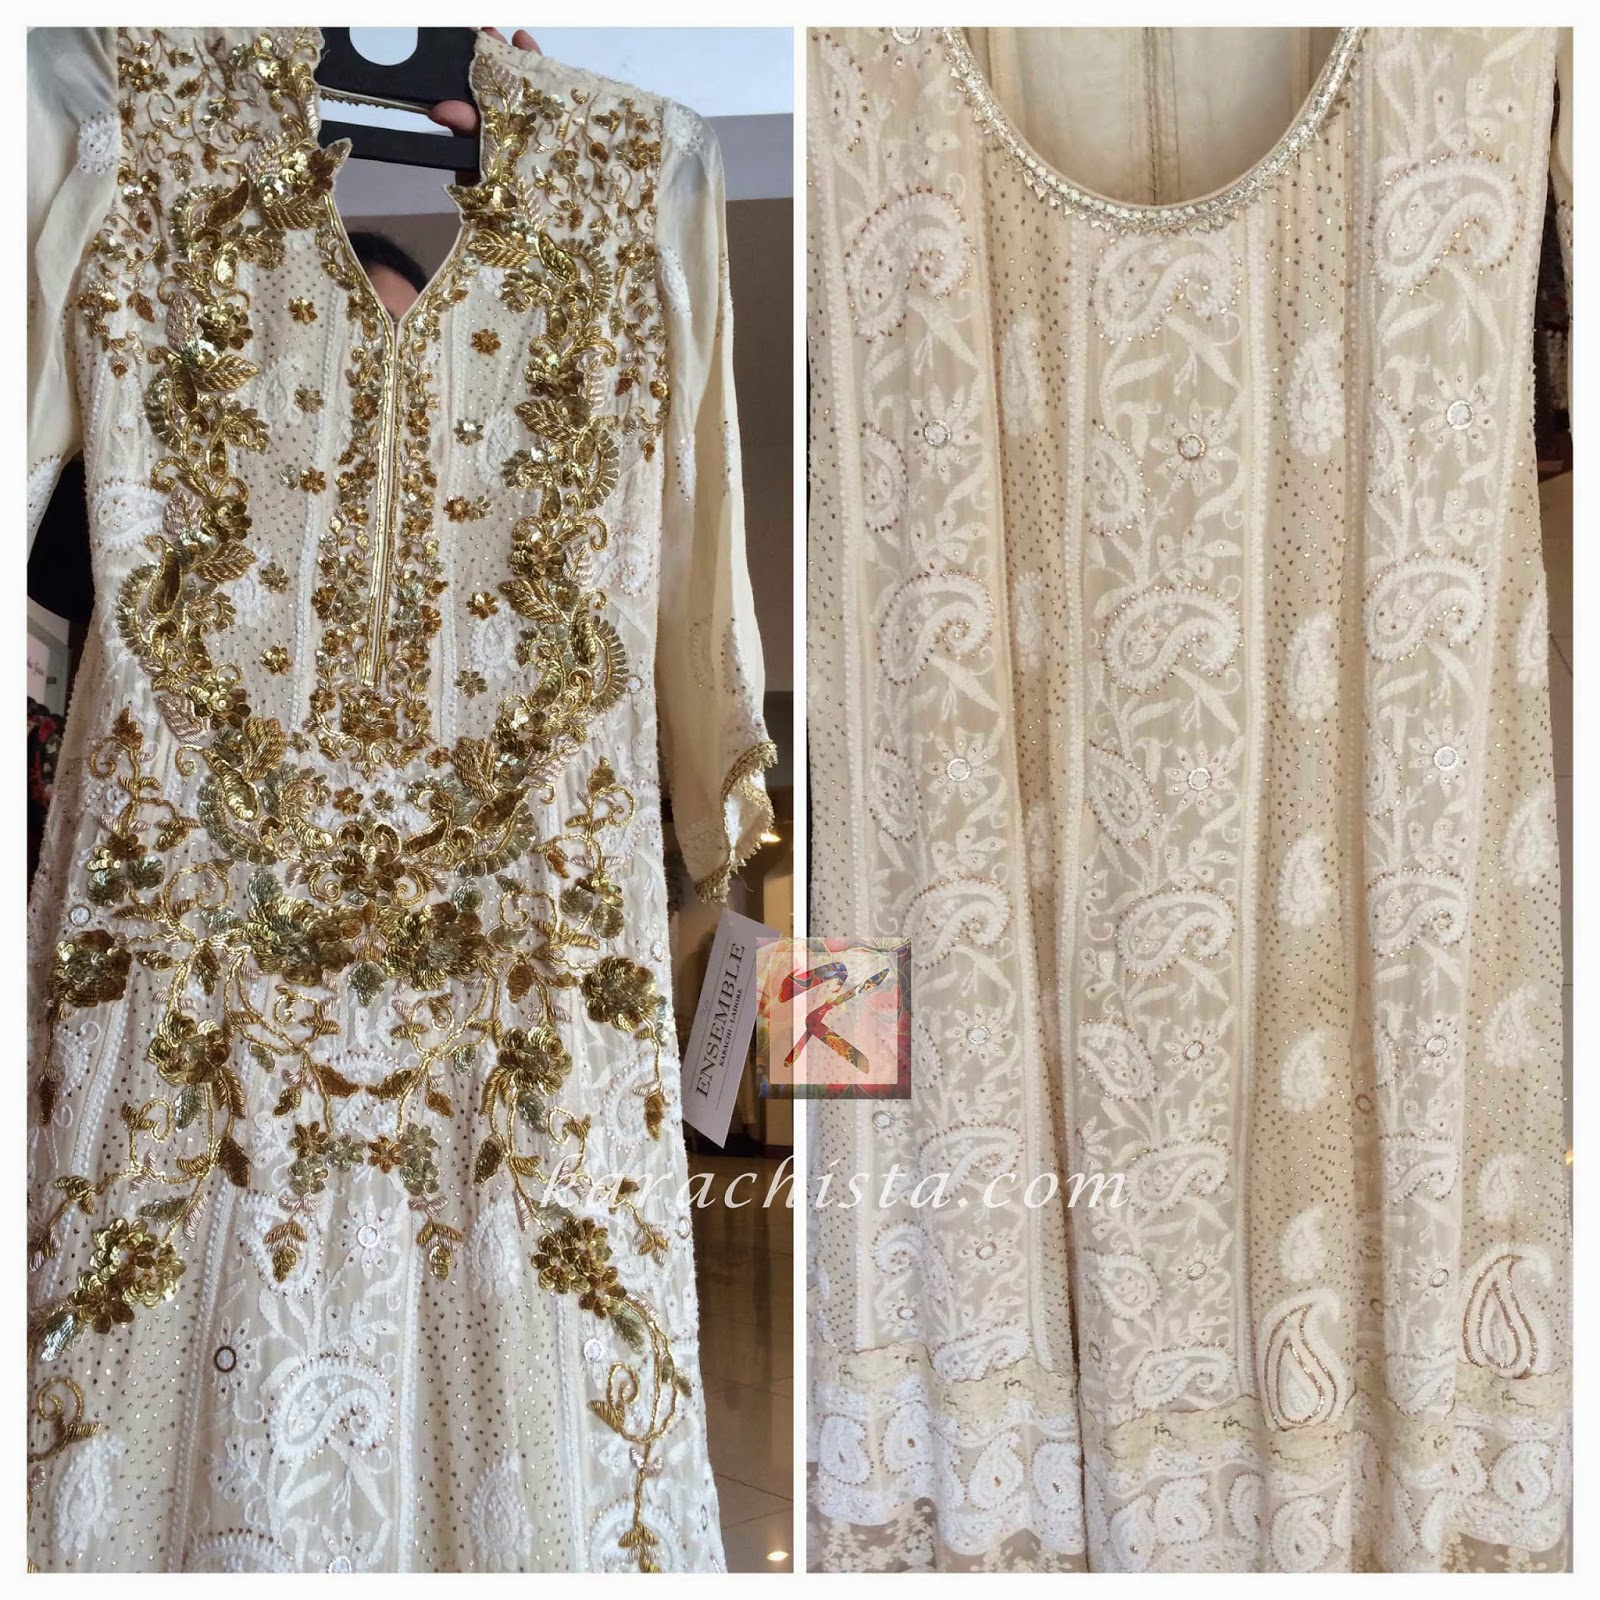 Off white lucknowi chikankari with gold work Gorgeous chikankari outfit by Indian designer Nishi Mehra at Ensemble Karachi